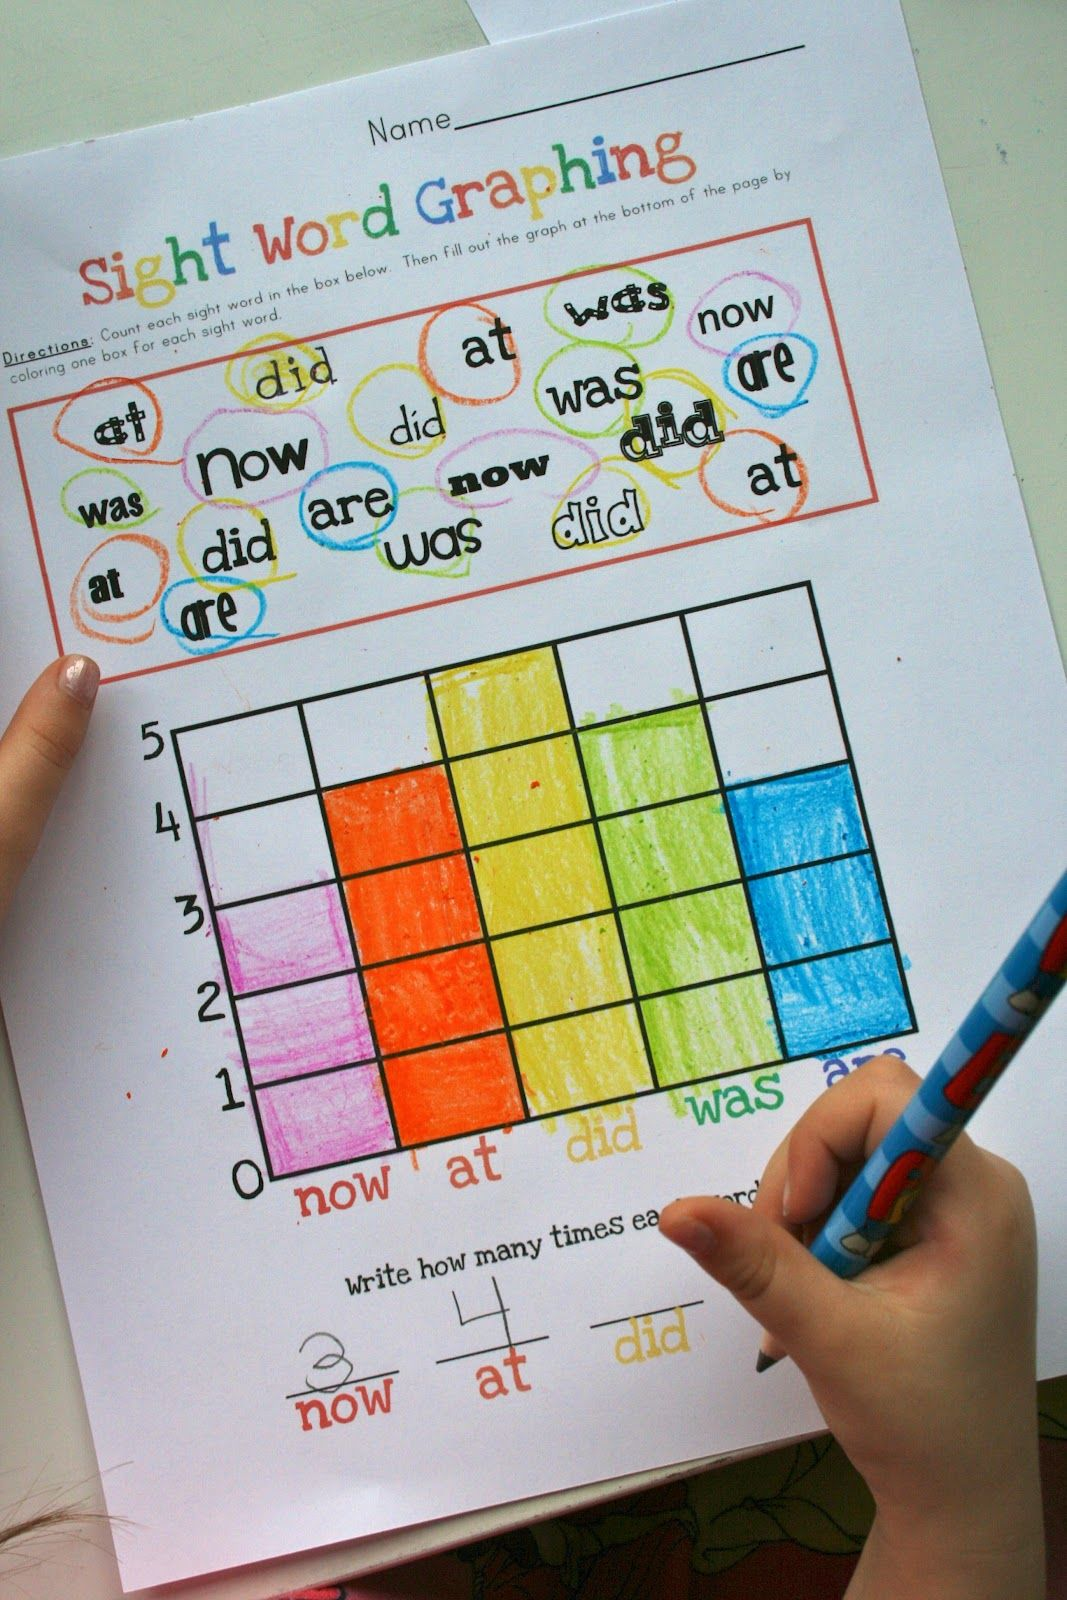 Graphing Sight Words With Different Fonts So They Can Recognize Them In A Variety Of Contexts